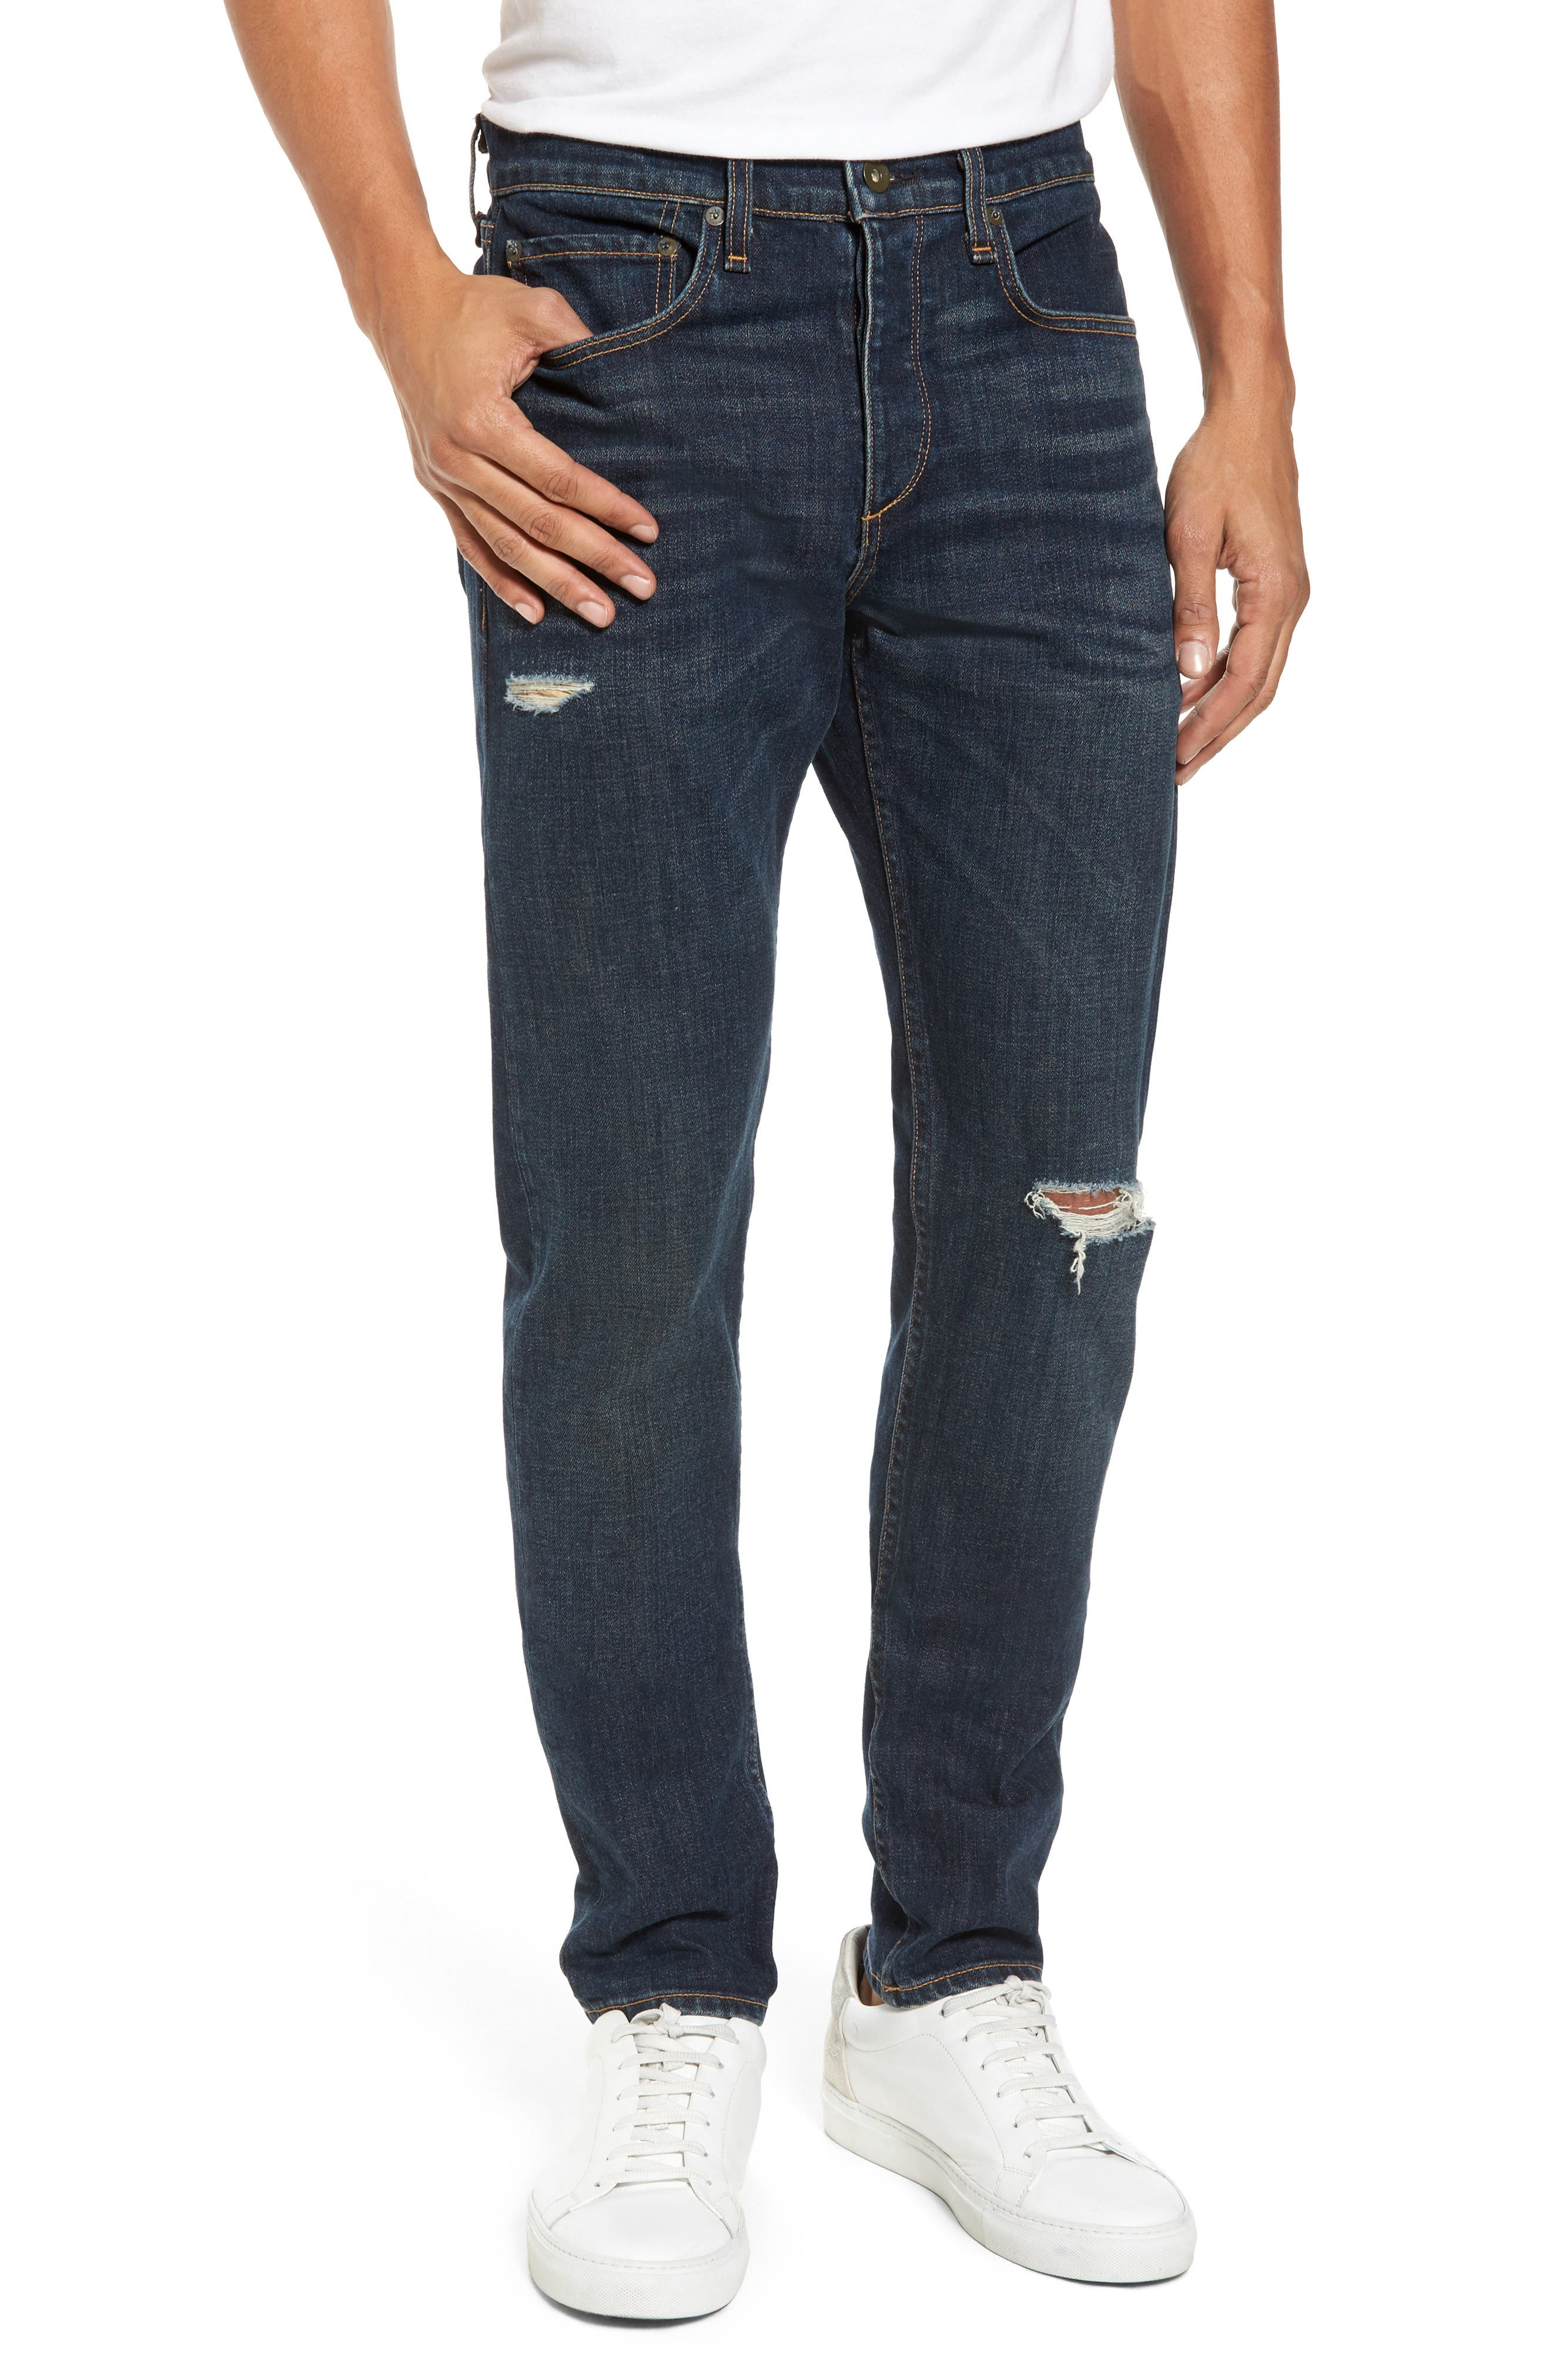 Fit 1 Skinny Fit Jeans,                             Main thumbnail 1, color,                             407